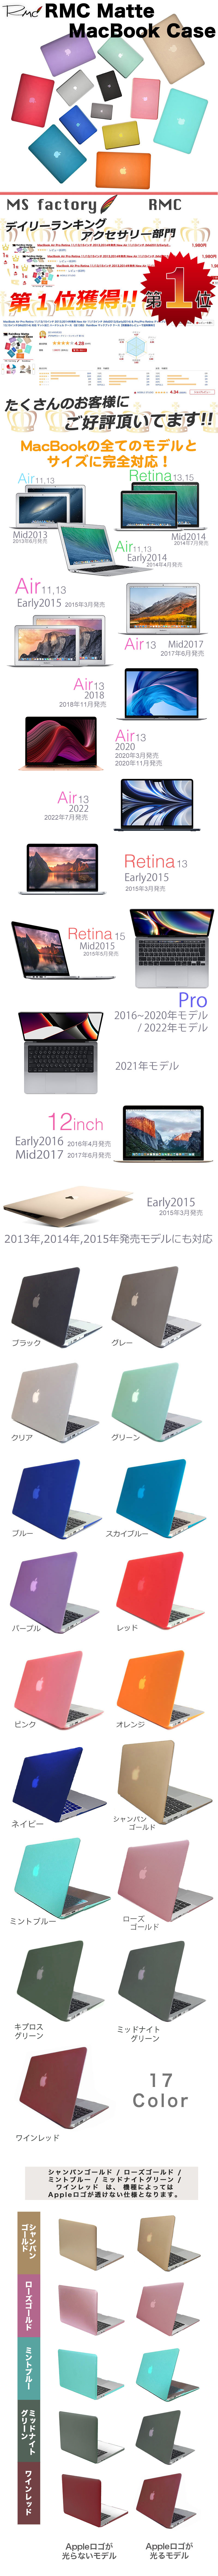 apple macbookpro Retina